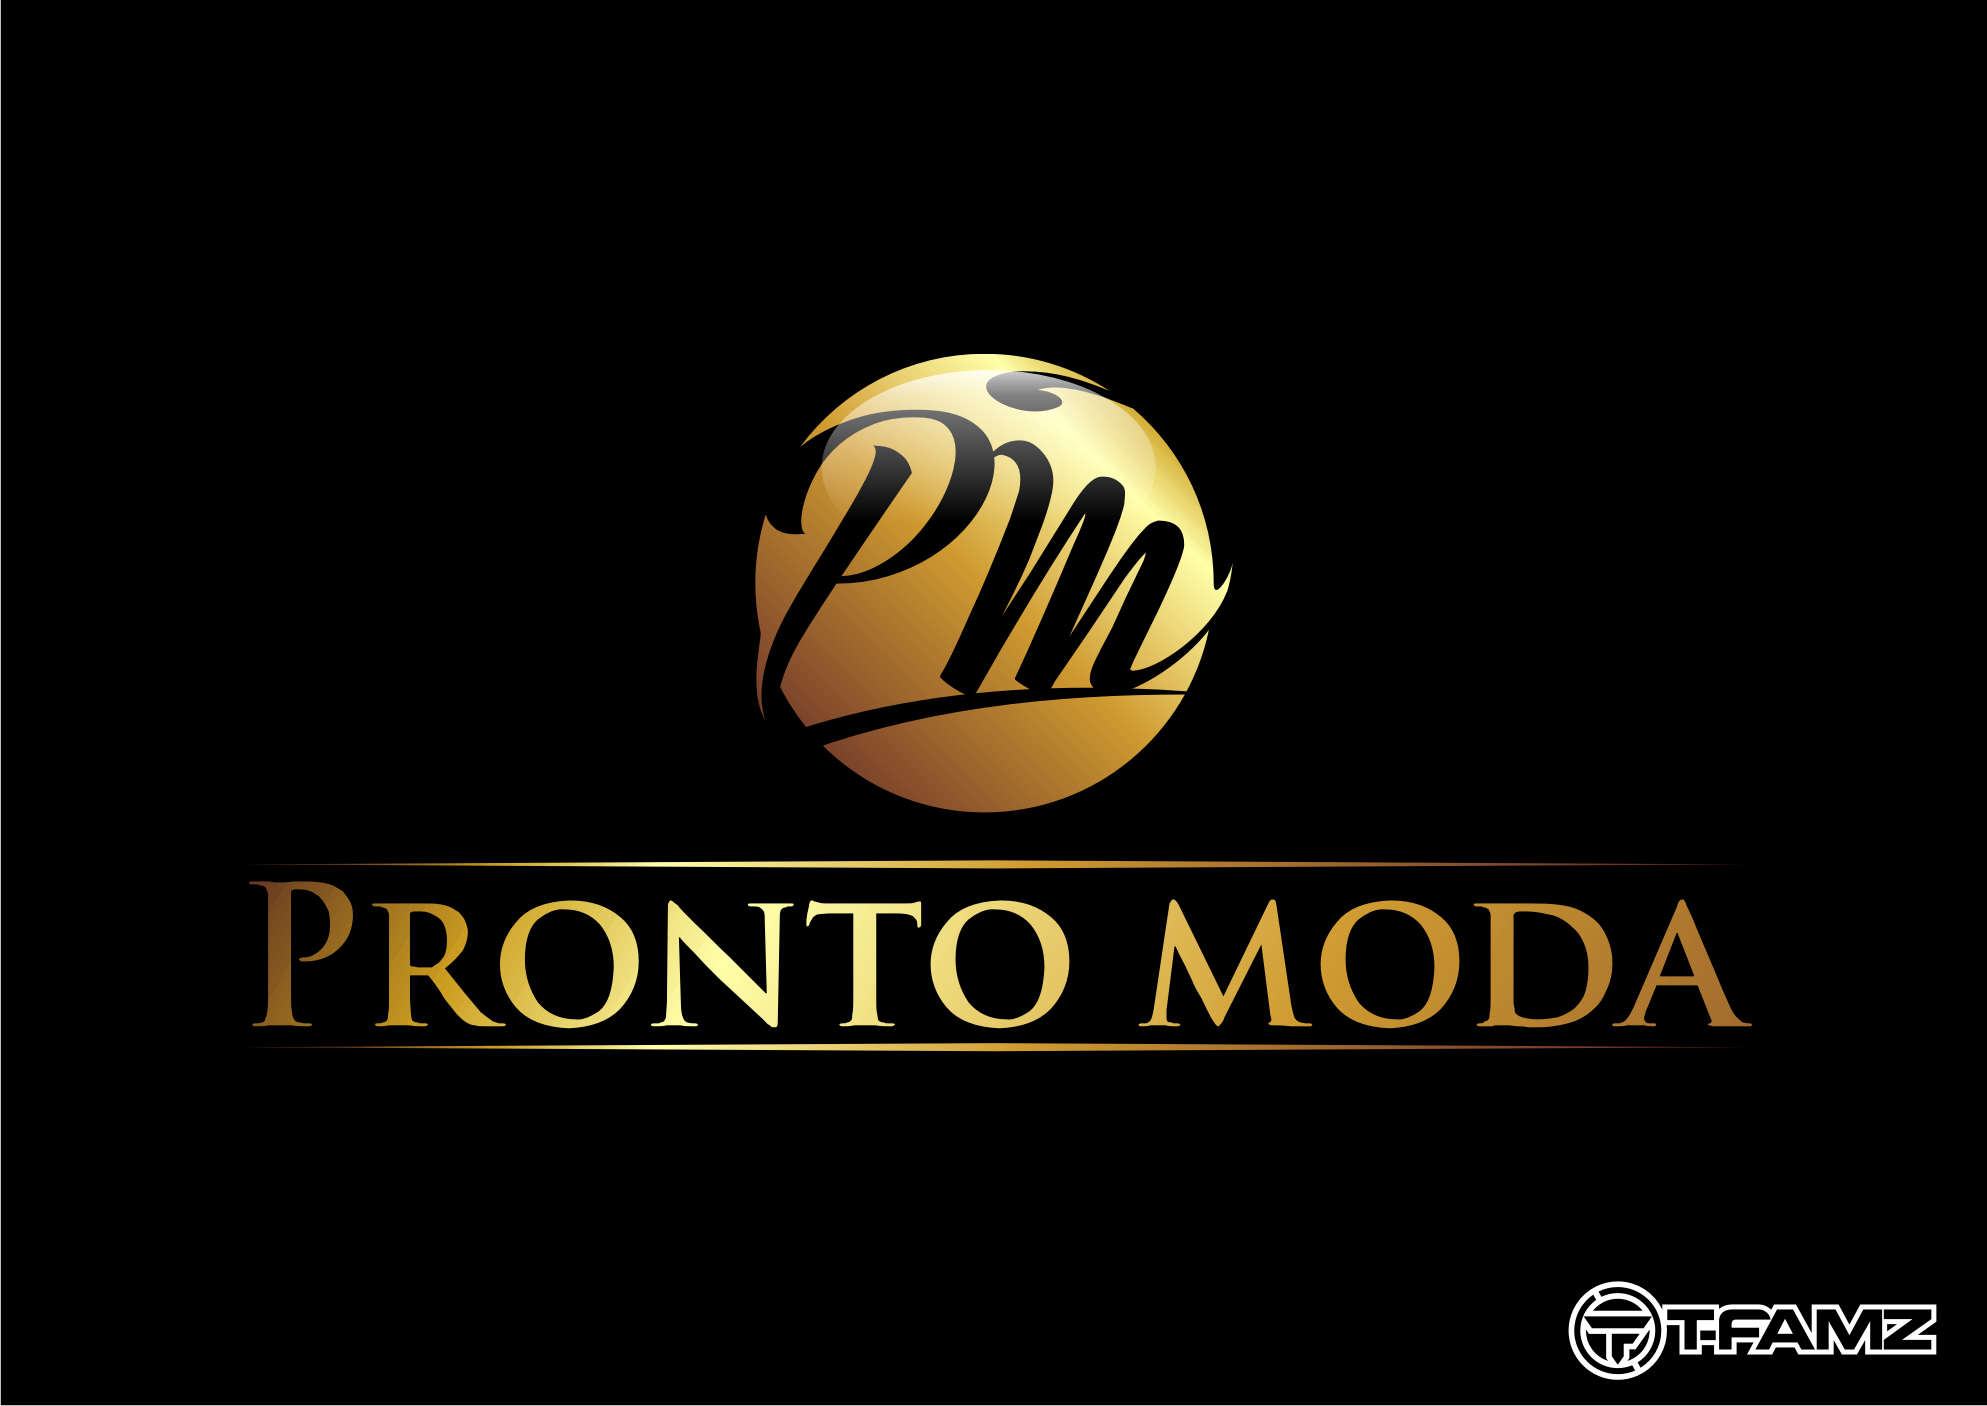 Logo Design by Tille Famz - Entry No. 9 in the Logo Design Contest Captivating Logo Design for Pronto moda.